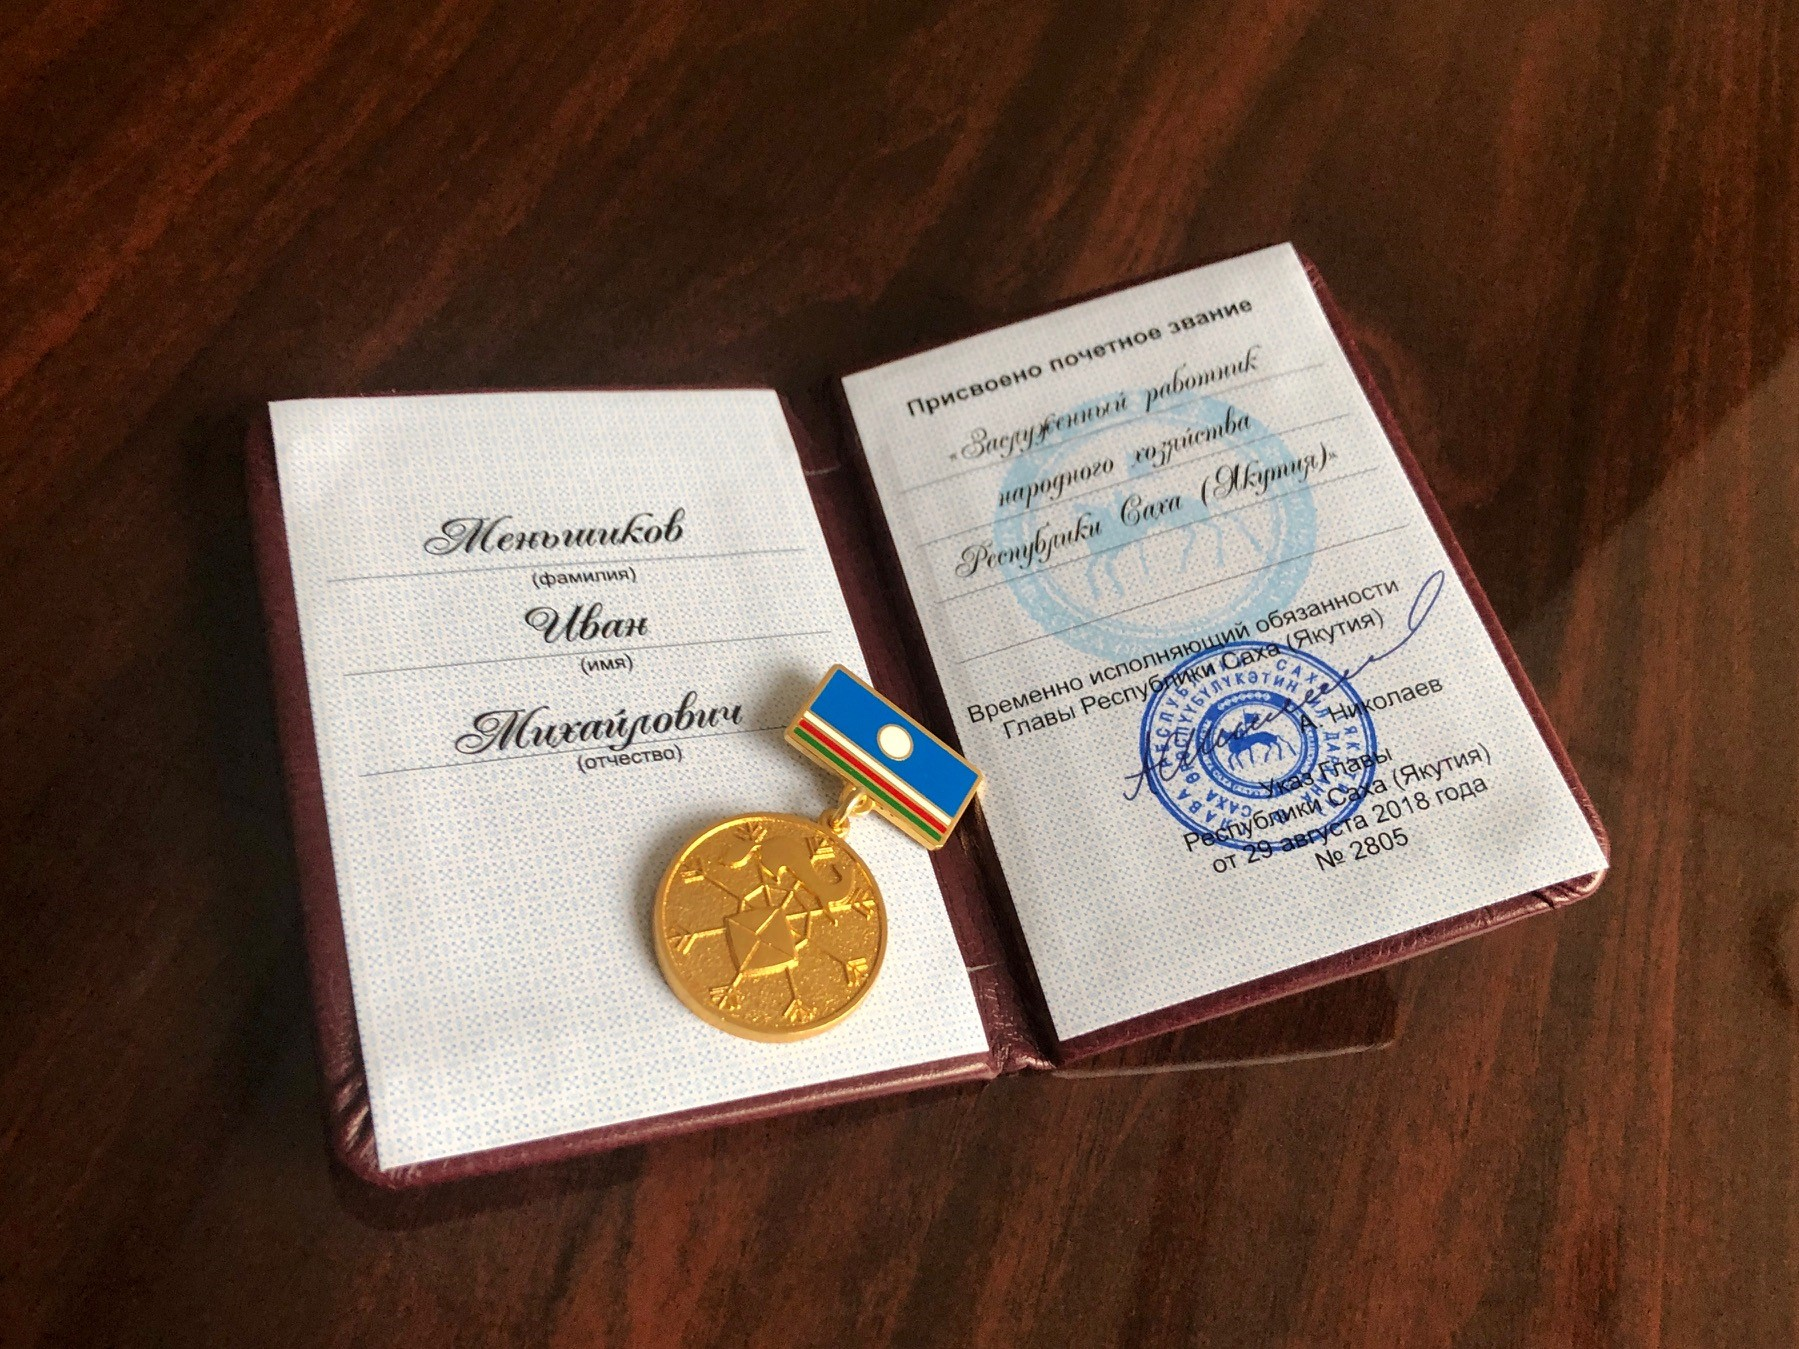 rng-chief-executive-officer-received-national-award-of-sakha-republic-1